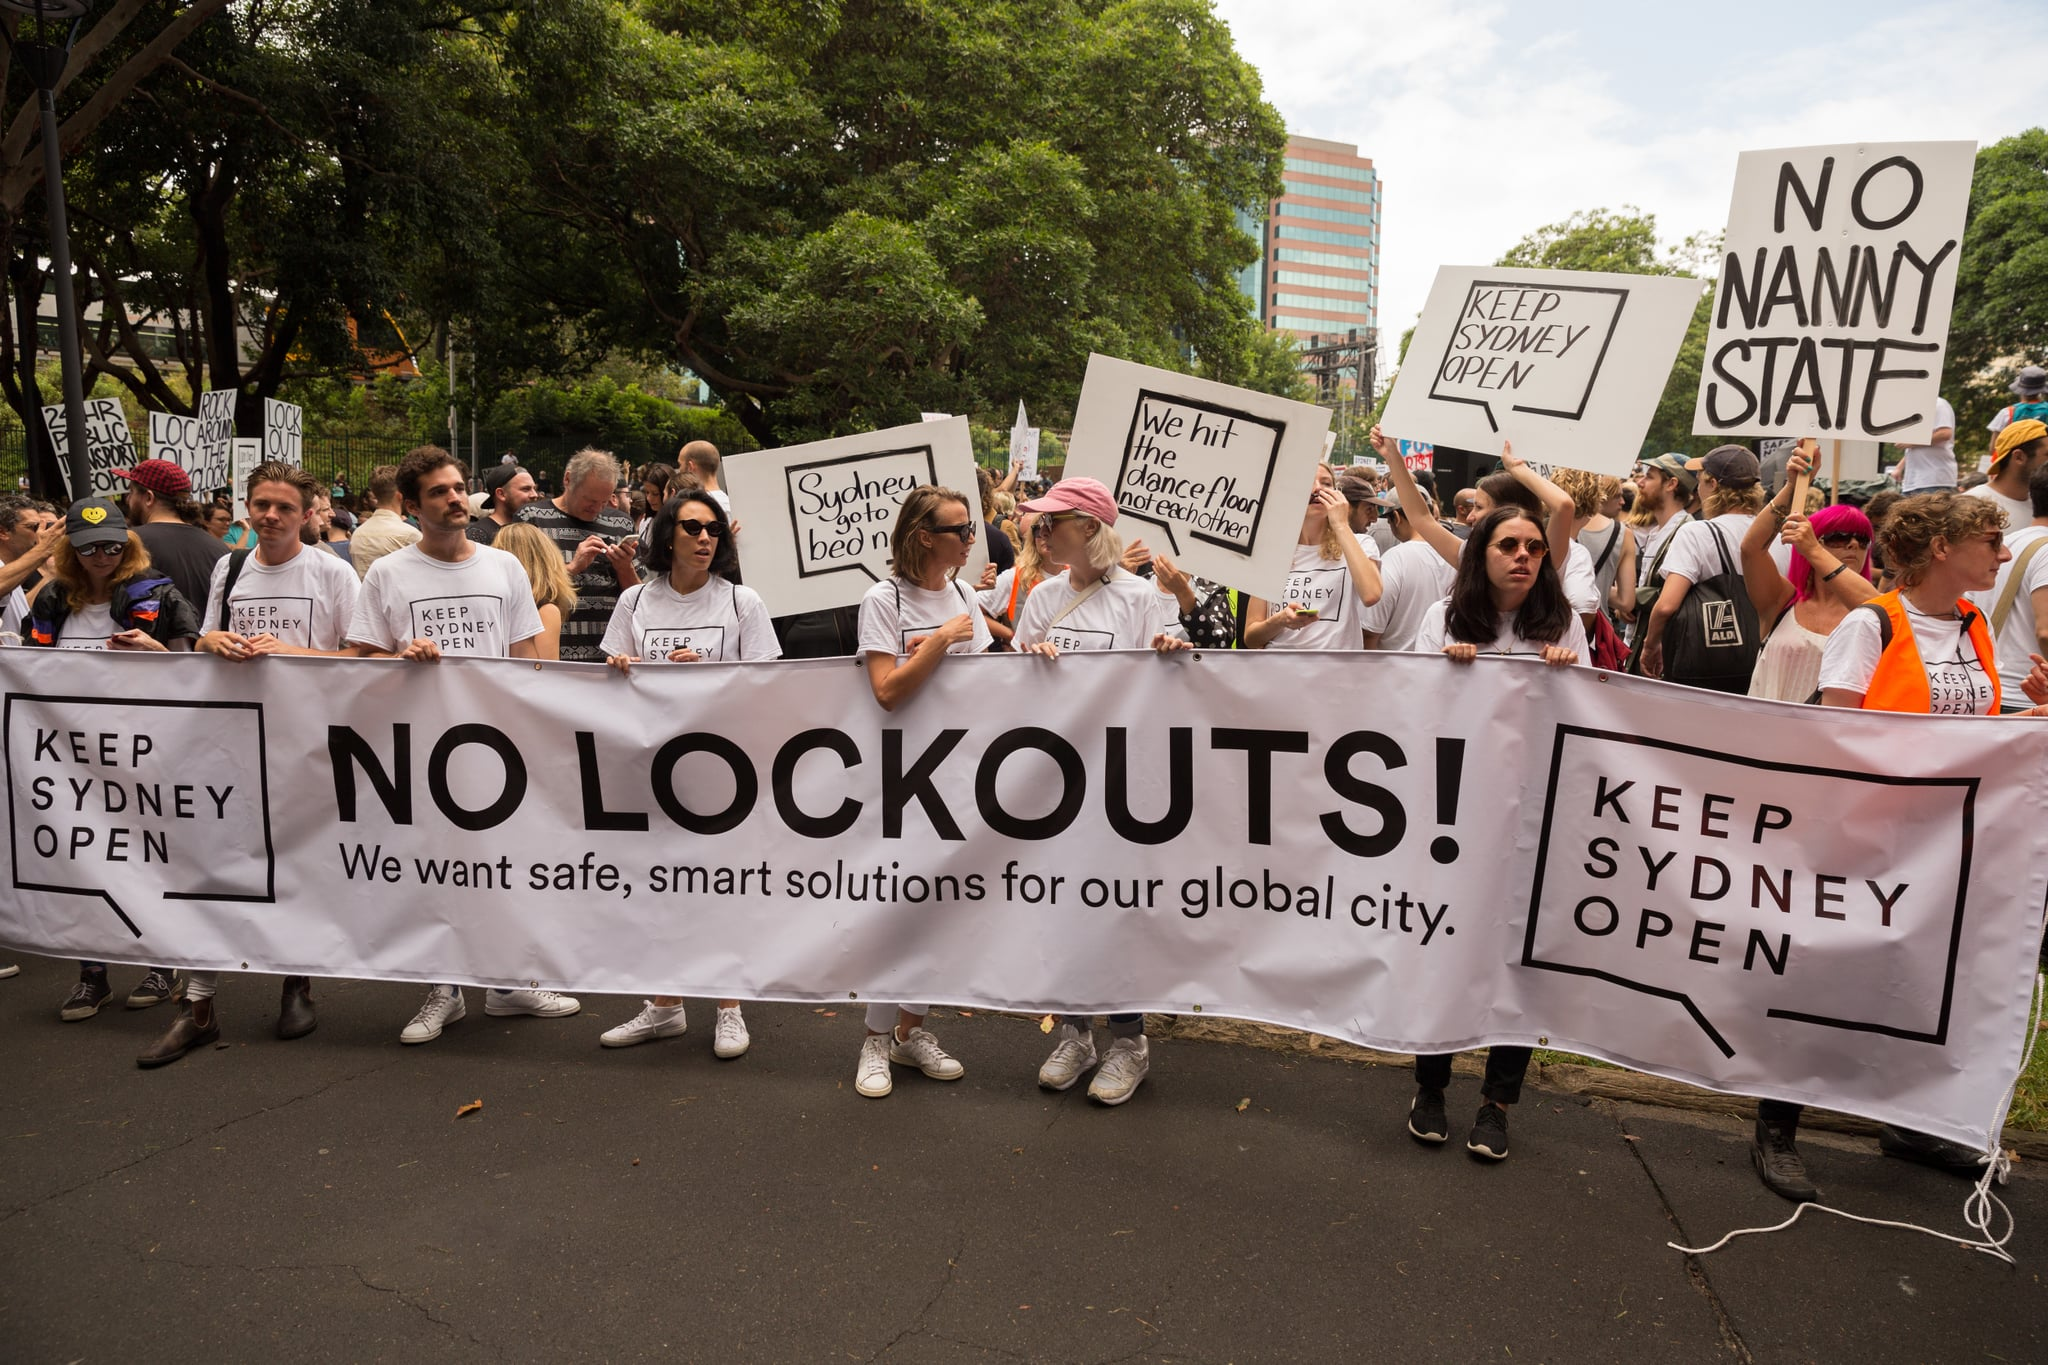 SYDNEY, NSW, AUSTRALIA - 2016/02/21: Protesters assembled and ready to march in Belmore park the rallying point for the demonstration. An estimated 15 thousand  protested in a colorful, noisy, musical rally in Sydney against the controversial CBD 'Lock out Laws' introduced by the State Government in an attempt to curtail alcohol violence. (Photo by Richard Ashen/Pacific Press/LightRocket via Getty Images)